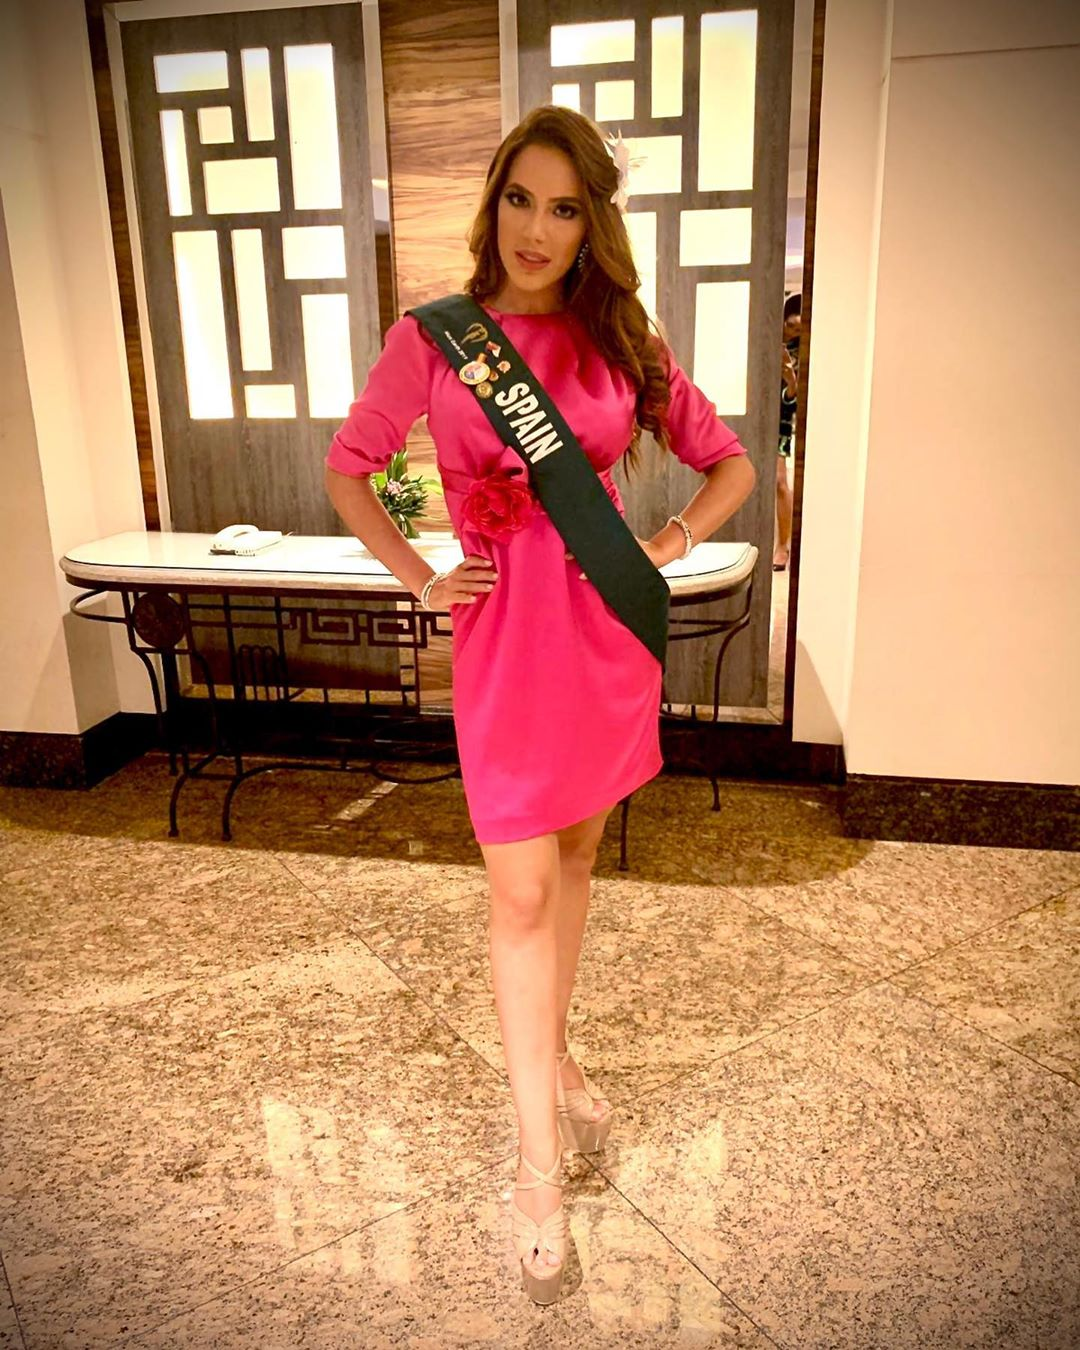 sonia hernandez, top 20 de miss earth 2019. - Página 6 71527610